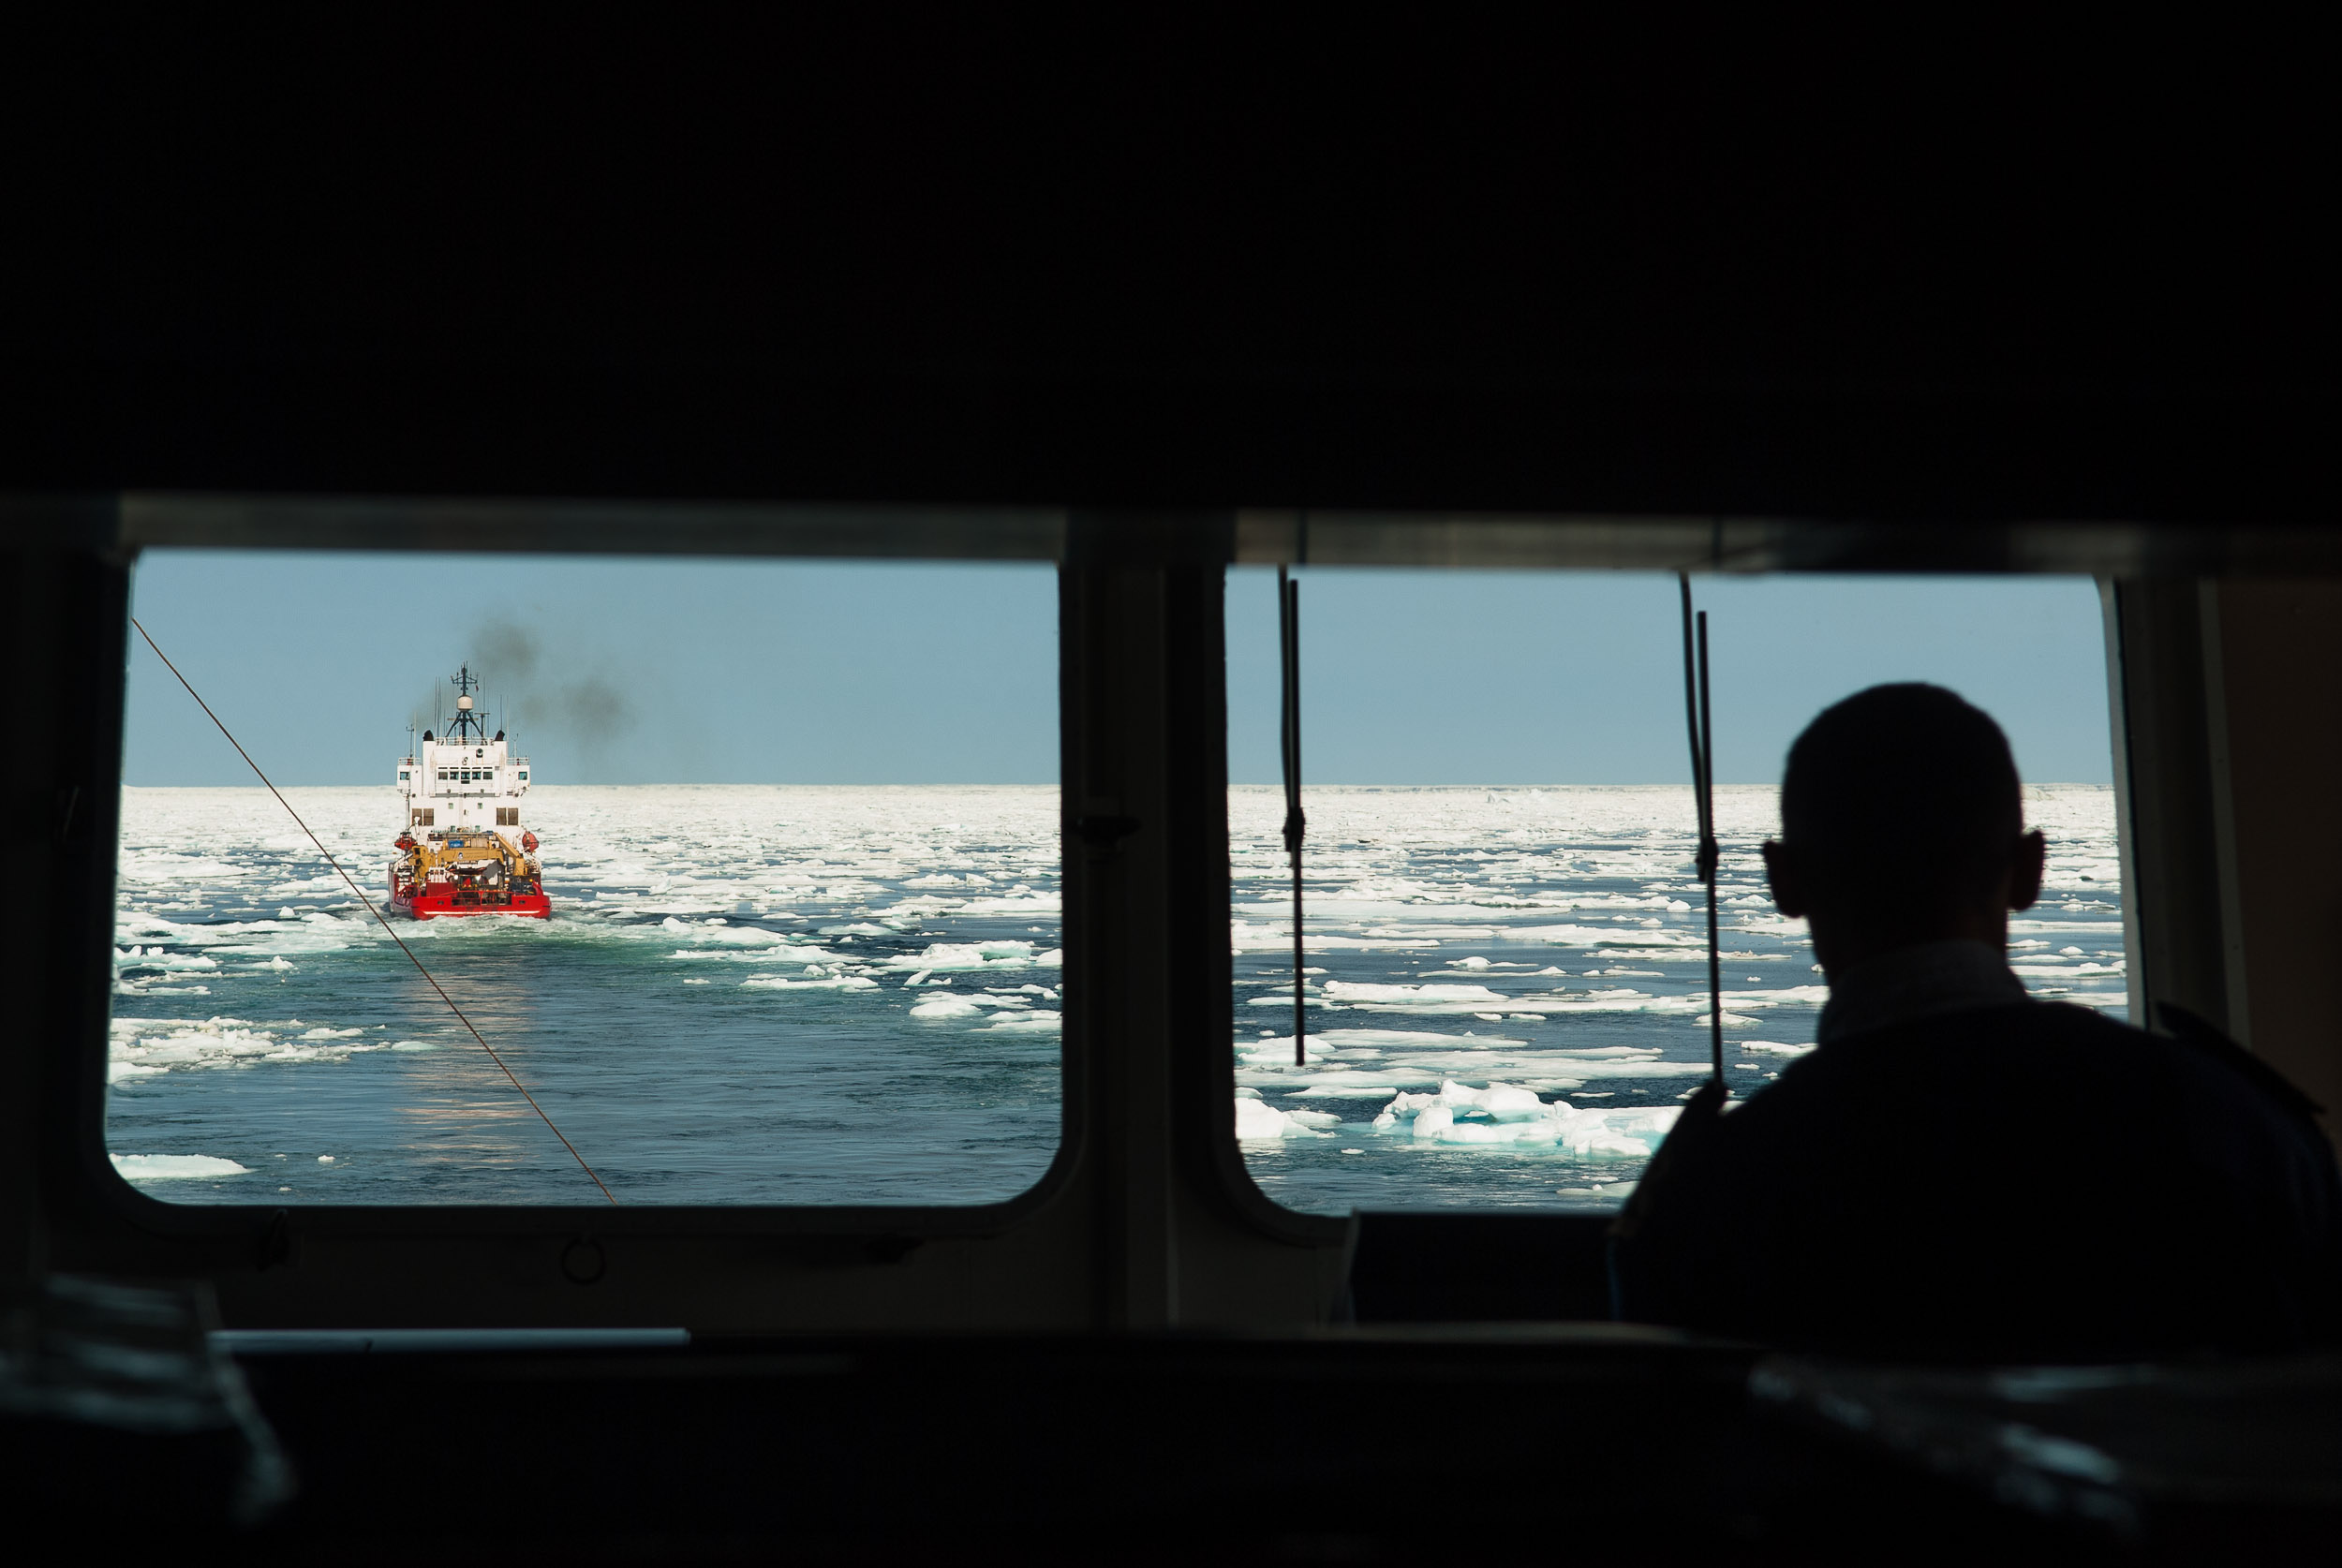 View from the Bridge of the  Akademik Ioffe , of the Ice breaker the  Terry Fox  clearing a path through heavy pack ice, for the polar cruise ship the Akademik Ioffe, Baffin Island, Canada.